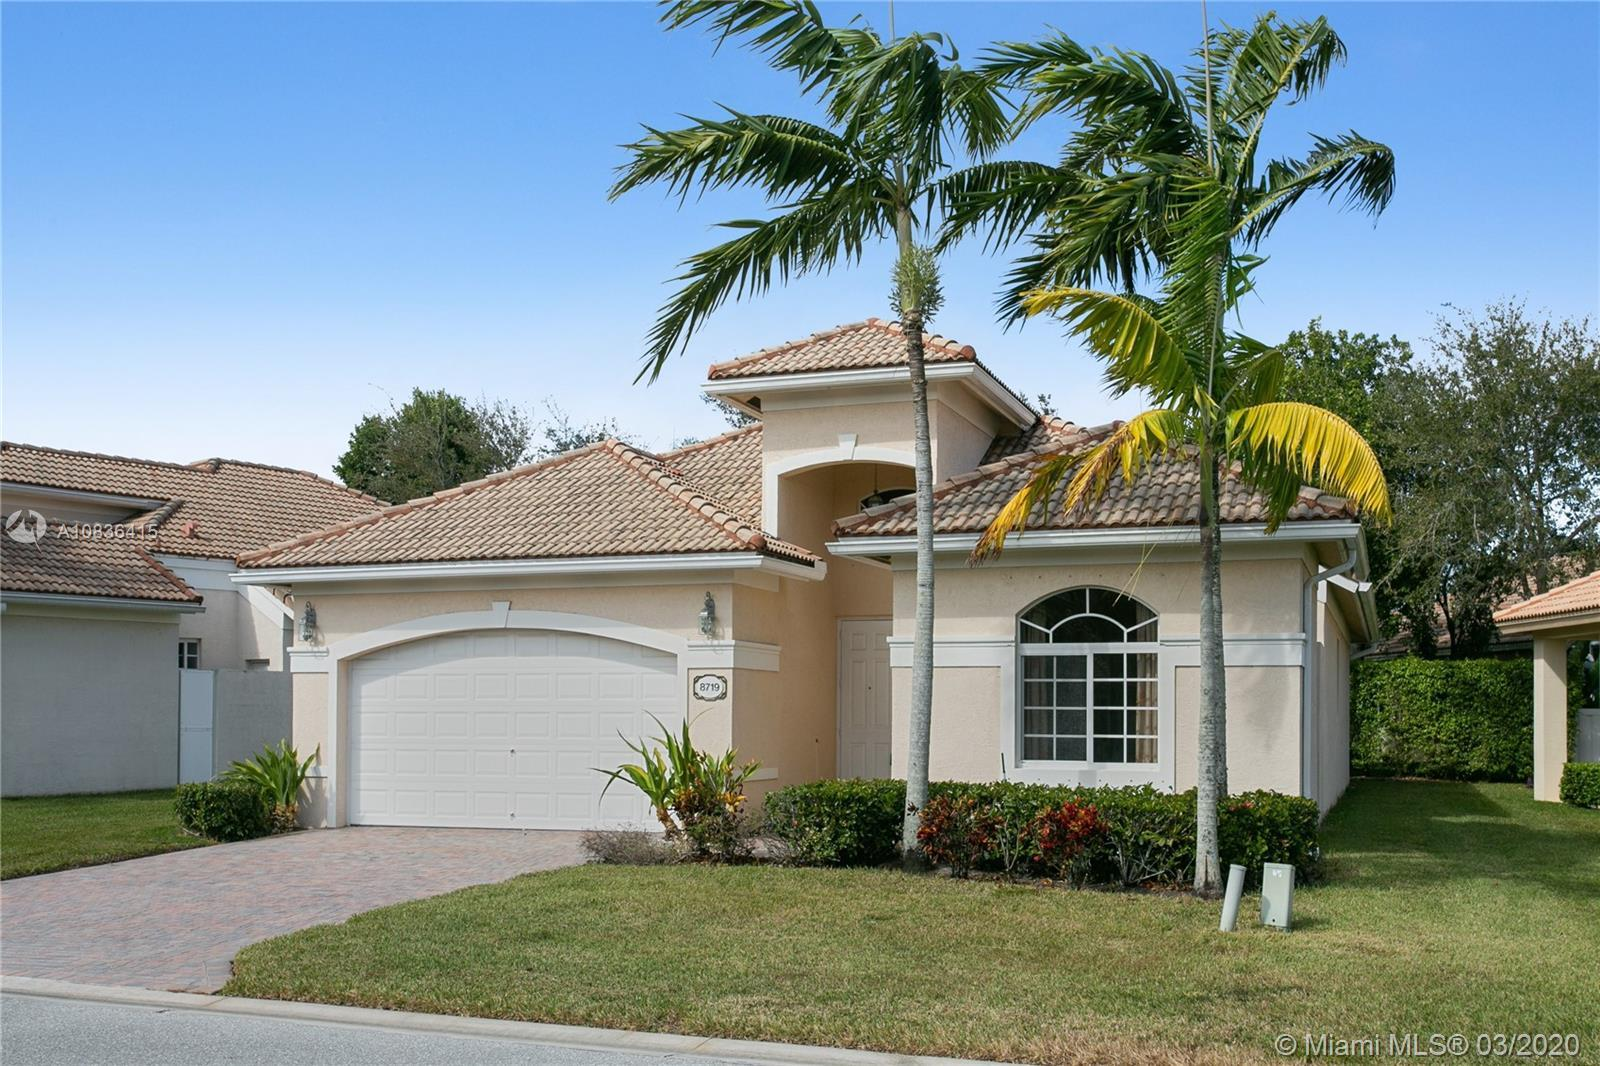 1-story single family home in desireable Andros Isle. The property offers brand new interior paintin